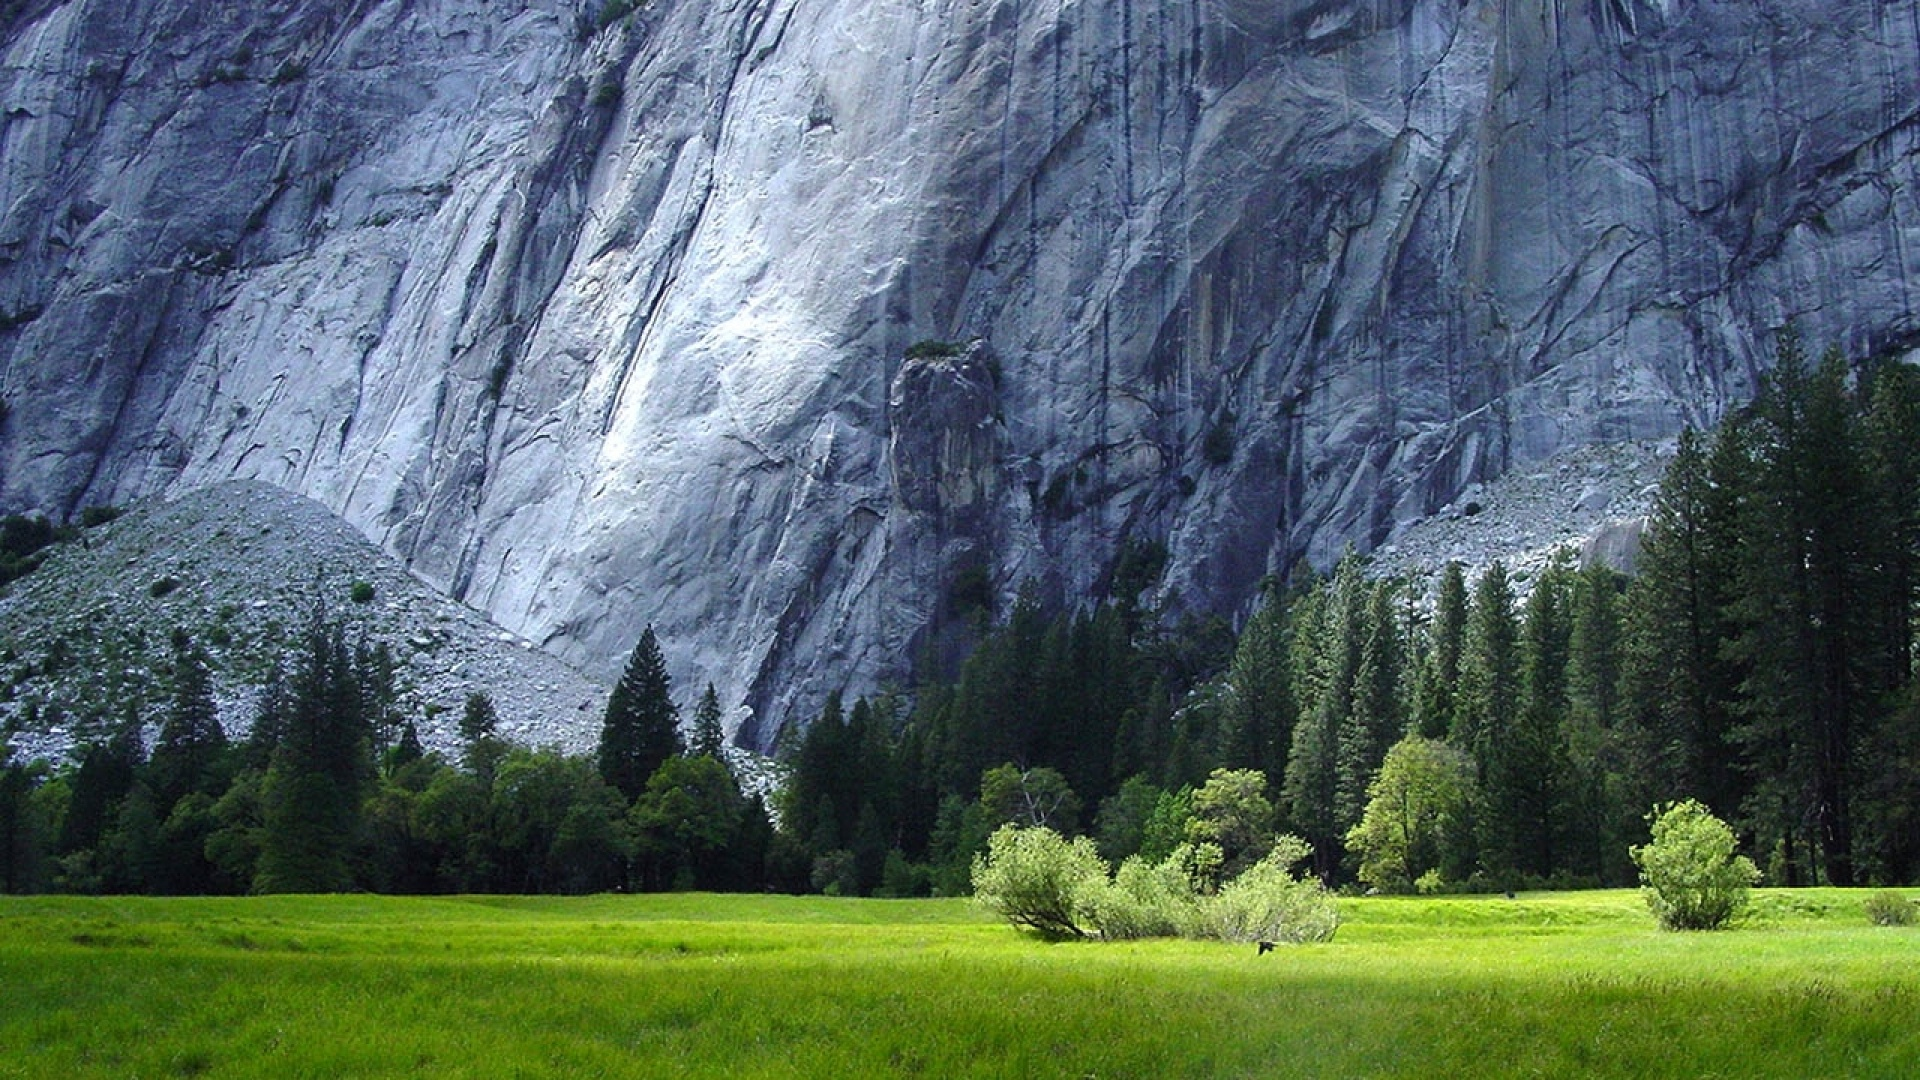 yosemite national park scenery wallpapers 41382 1920x1080